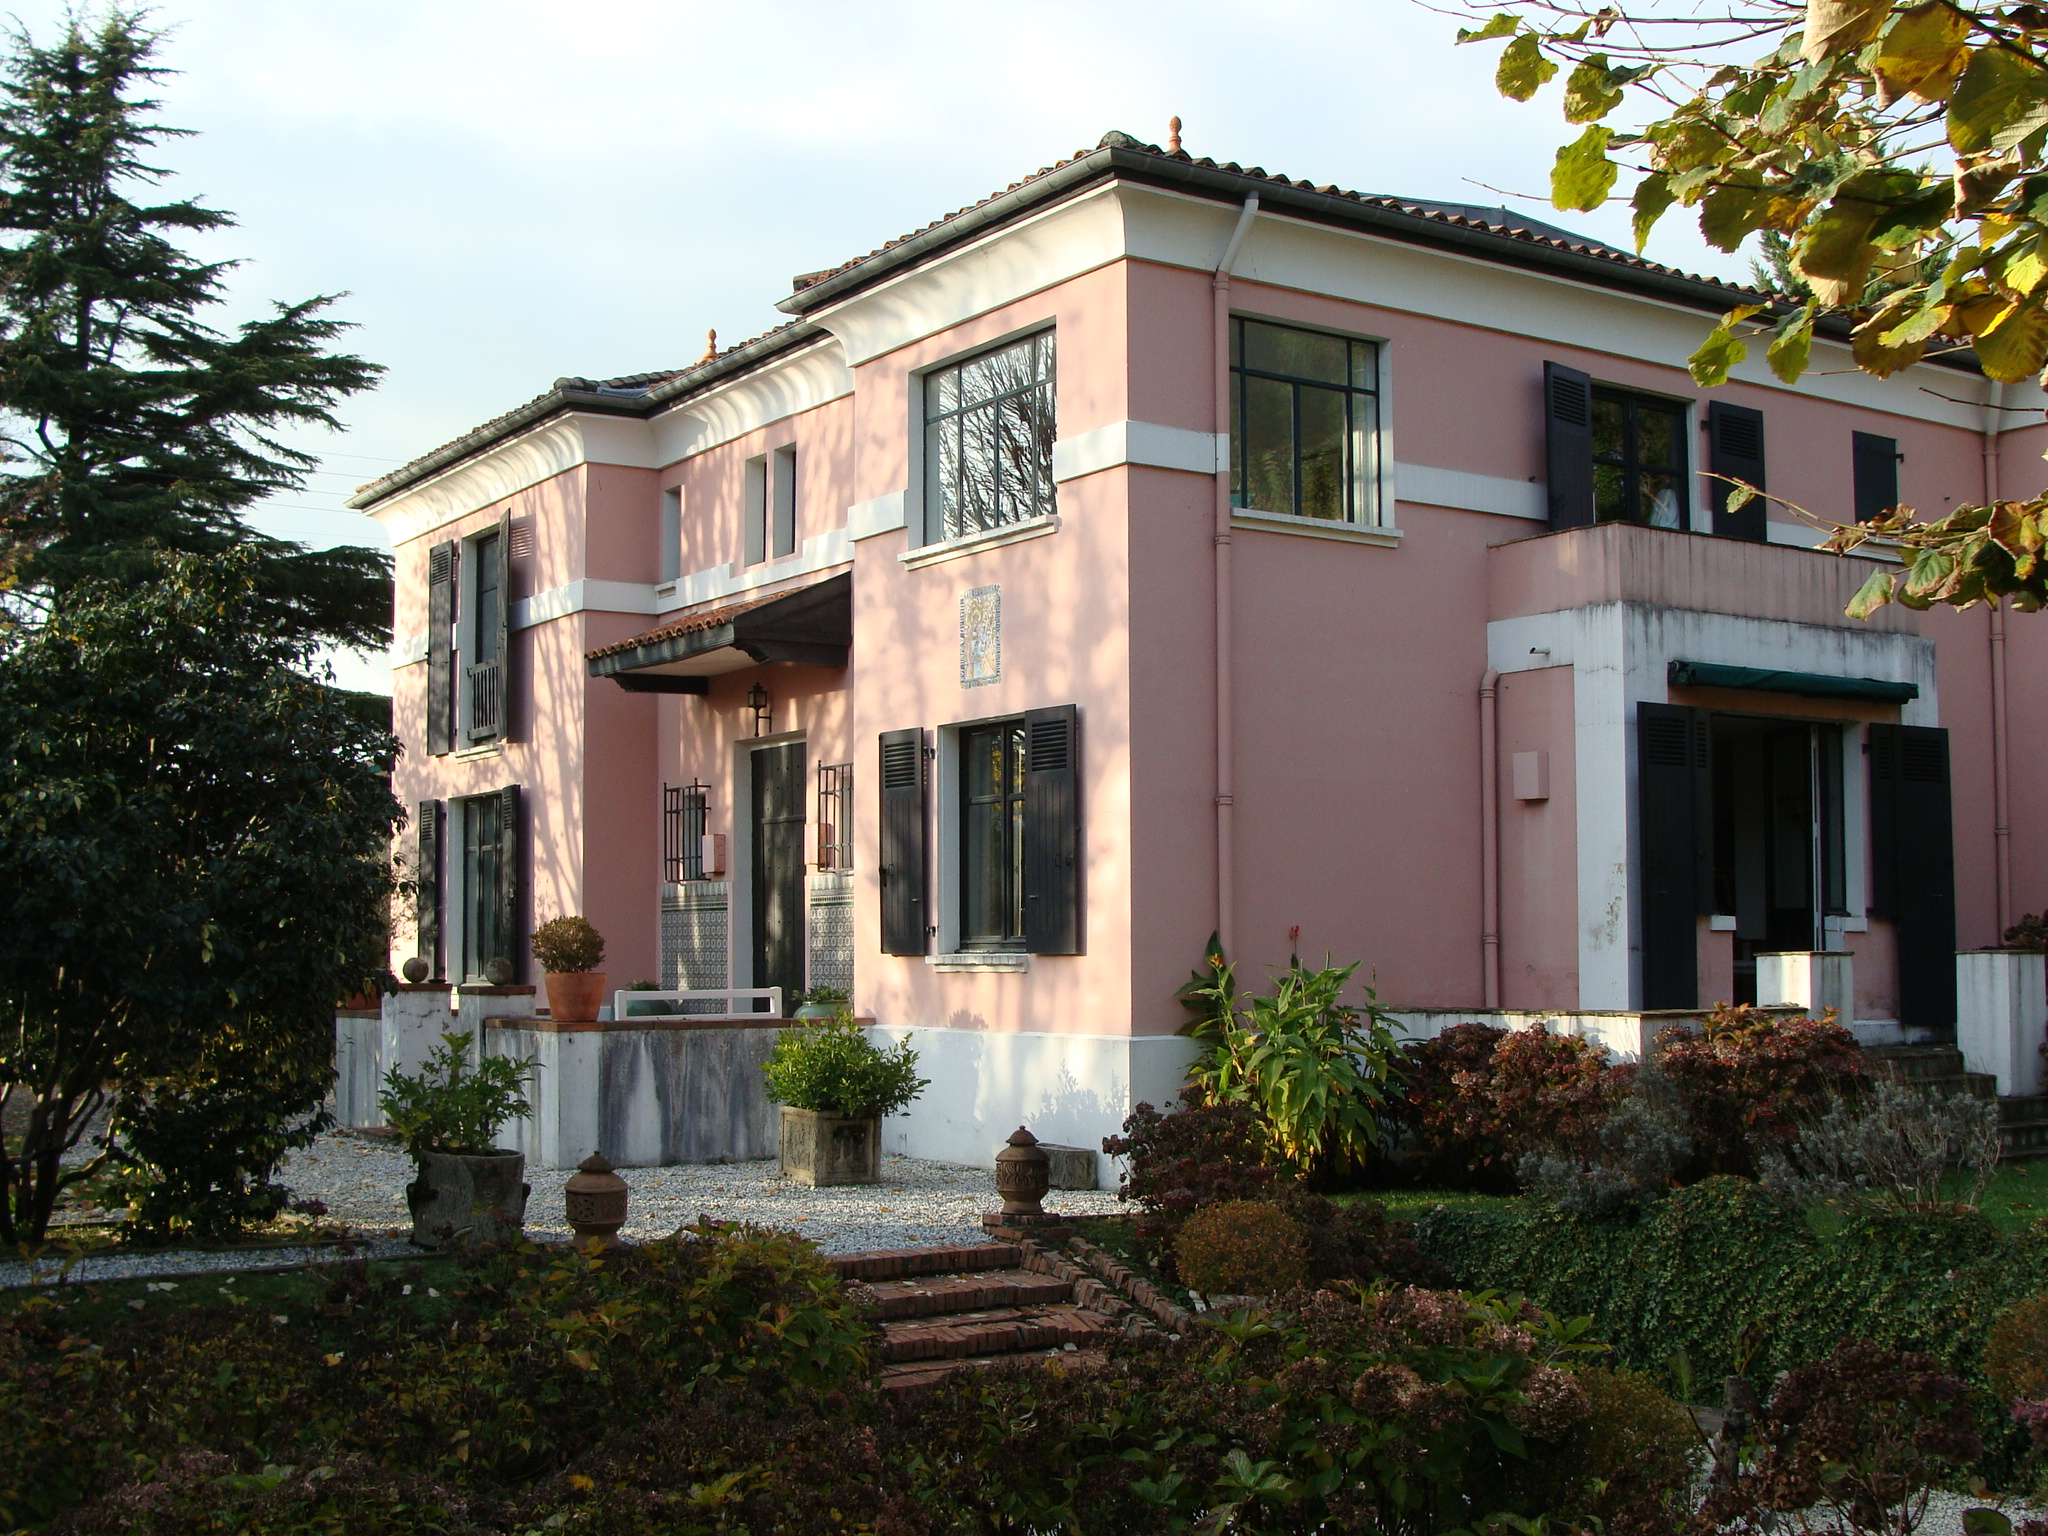 A vendre biarritz maison art d co ref ip pb 33 pays basque for Art maison deco